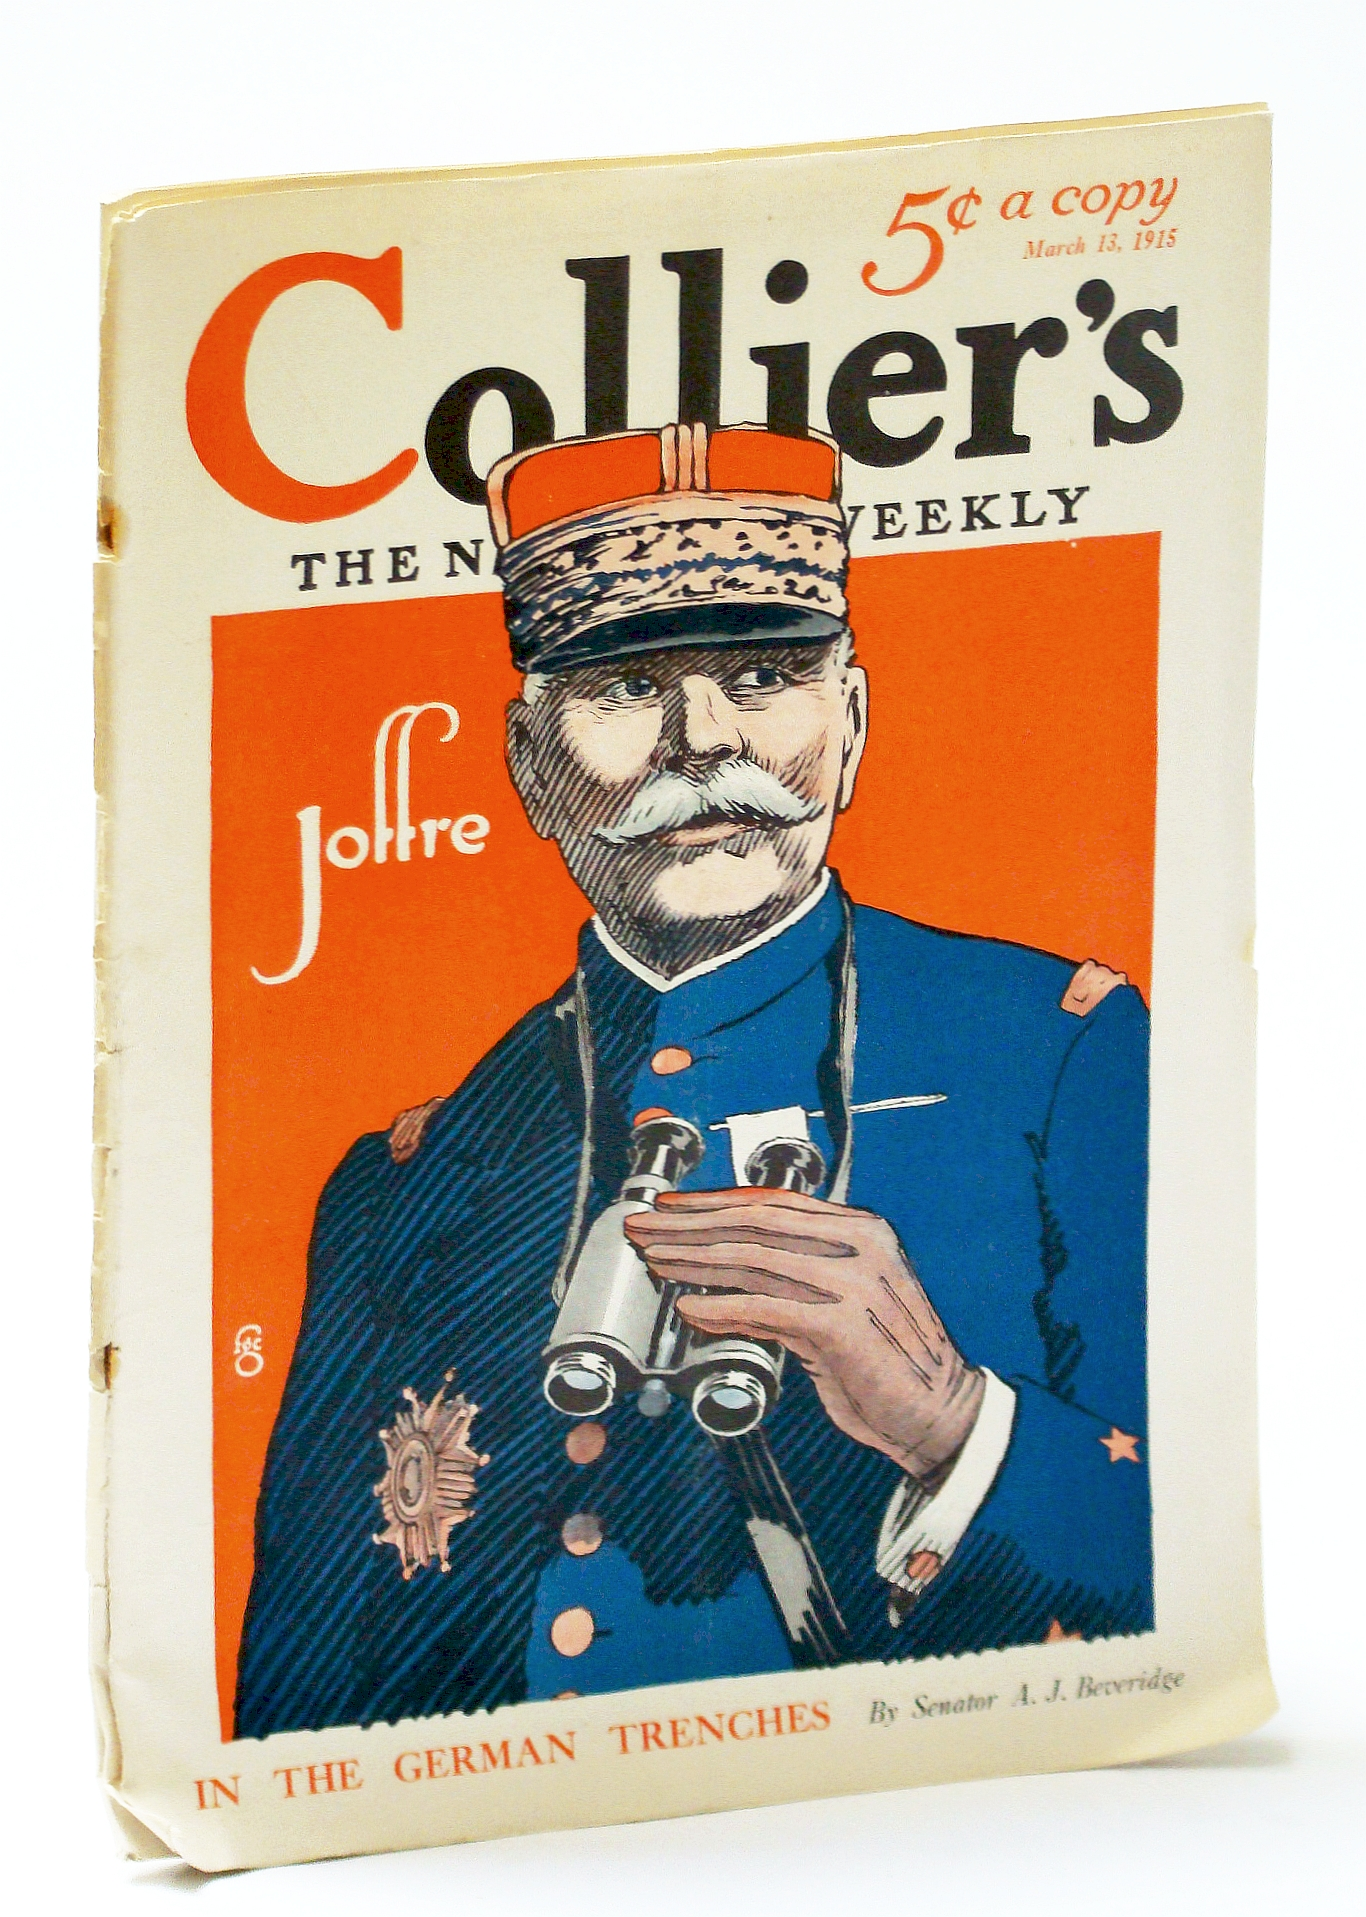 Image for Collier's, The National Weekly (Magazine), March (Mar.) 13, 1915, Vol. 54, No. 26 - In the German Trenches / General Joseph Joffre